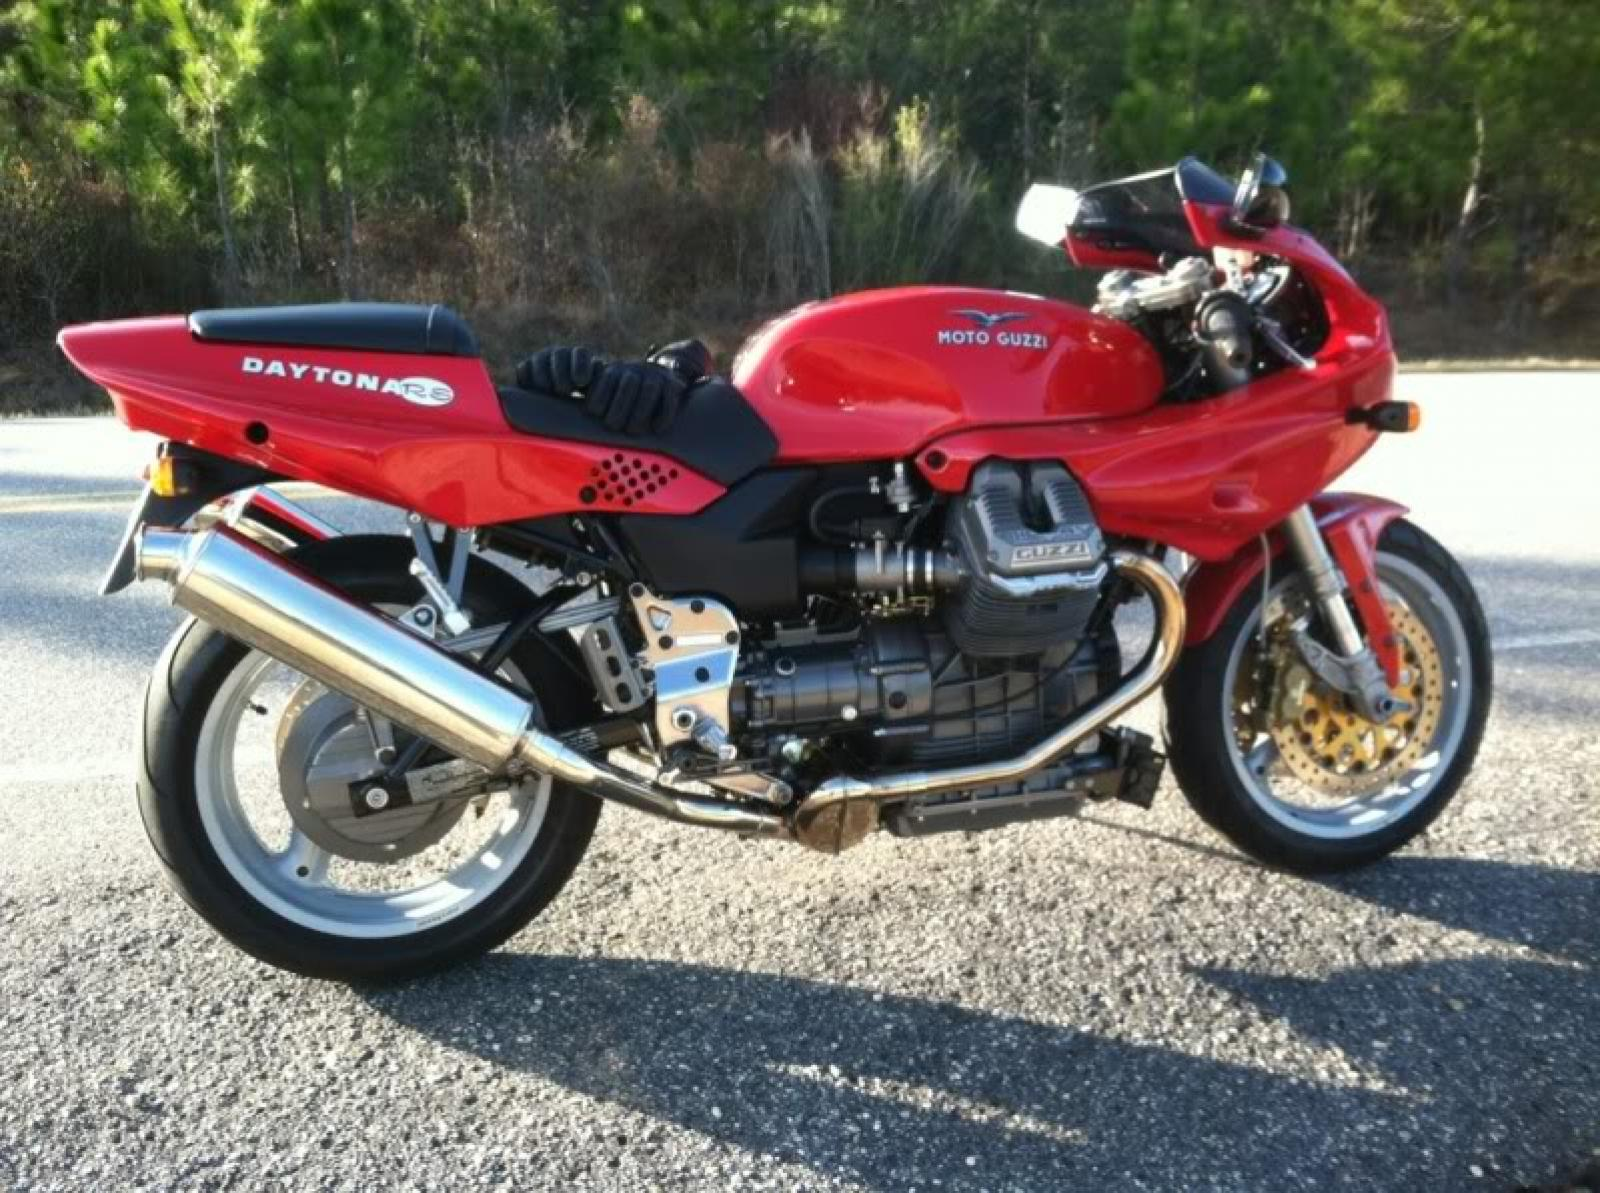 Moto Guzzi 1000 Daytona Injection images #108578